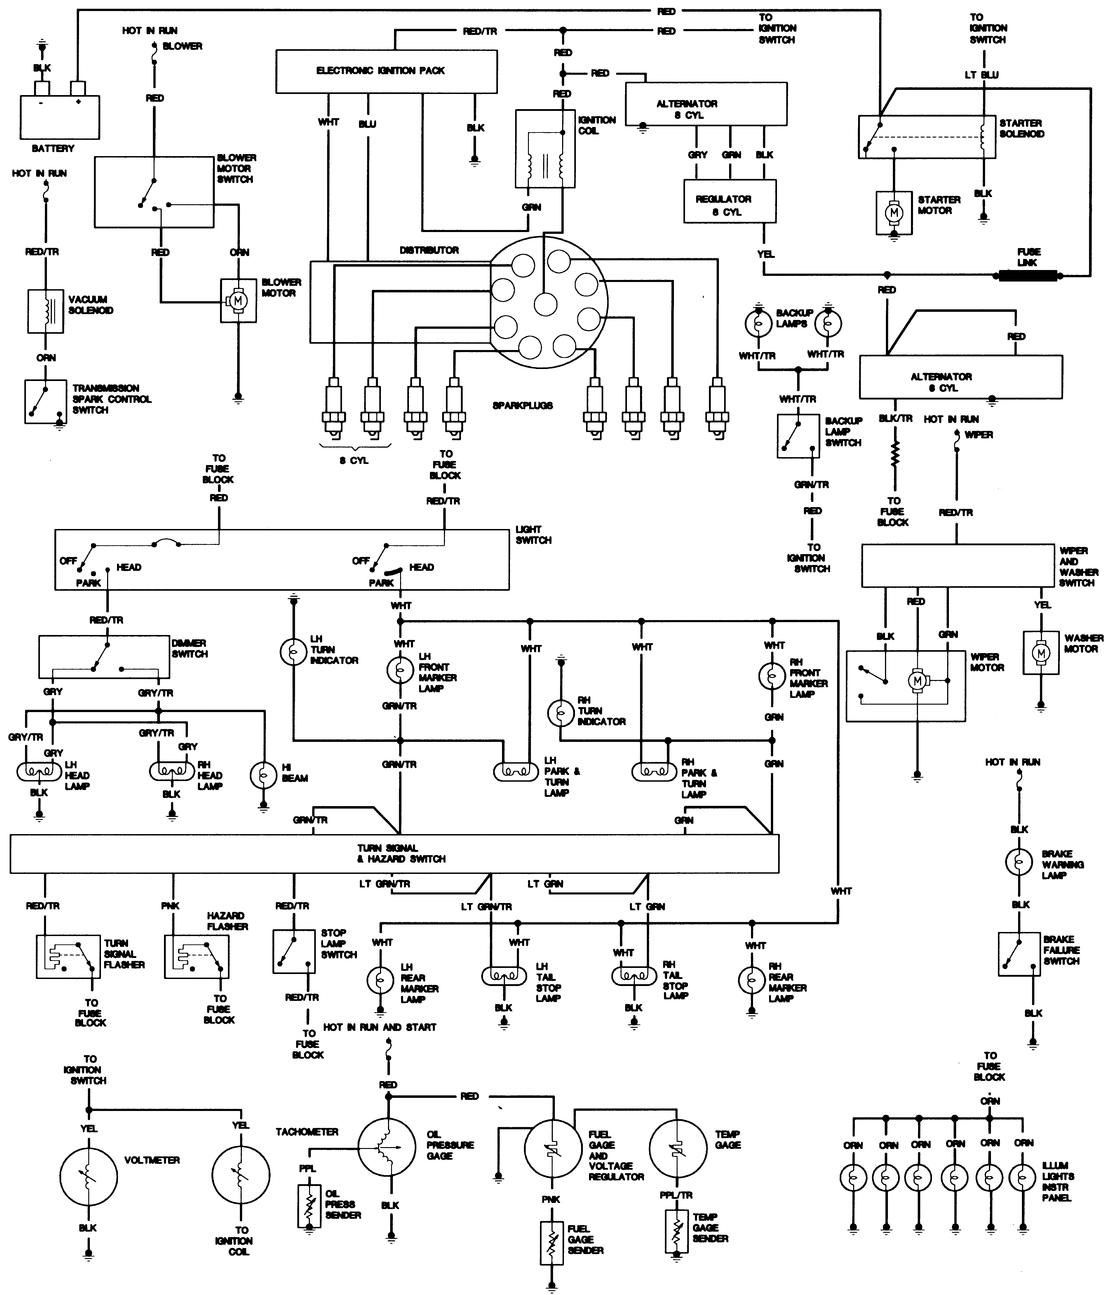 1980 cj5 wiring diagram furthermore jeep cj7 tachometer wiring ...